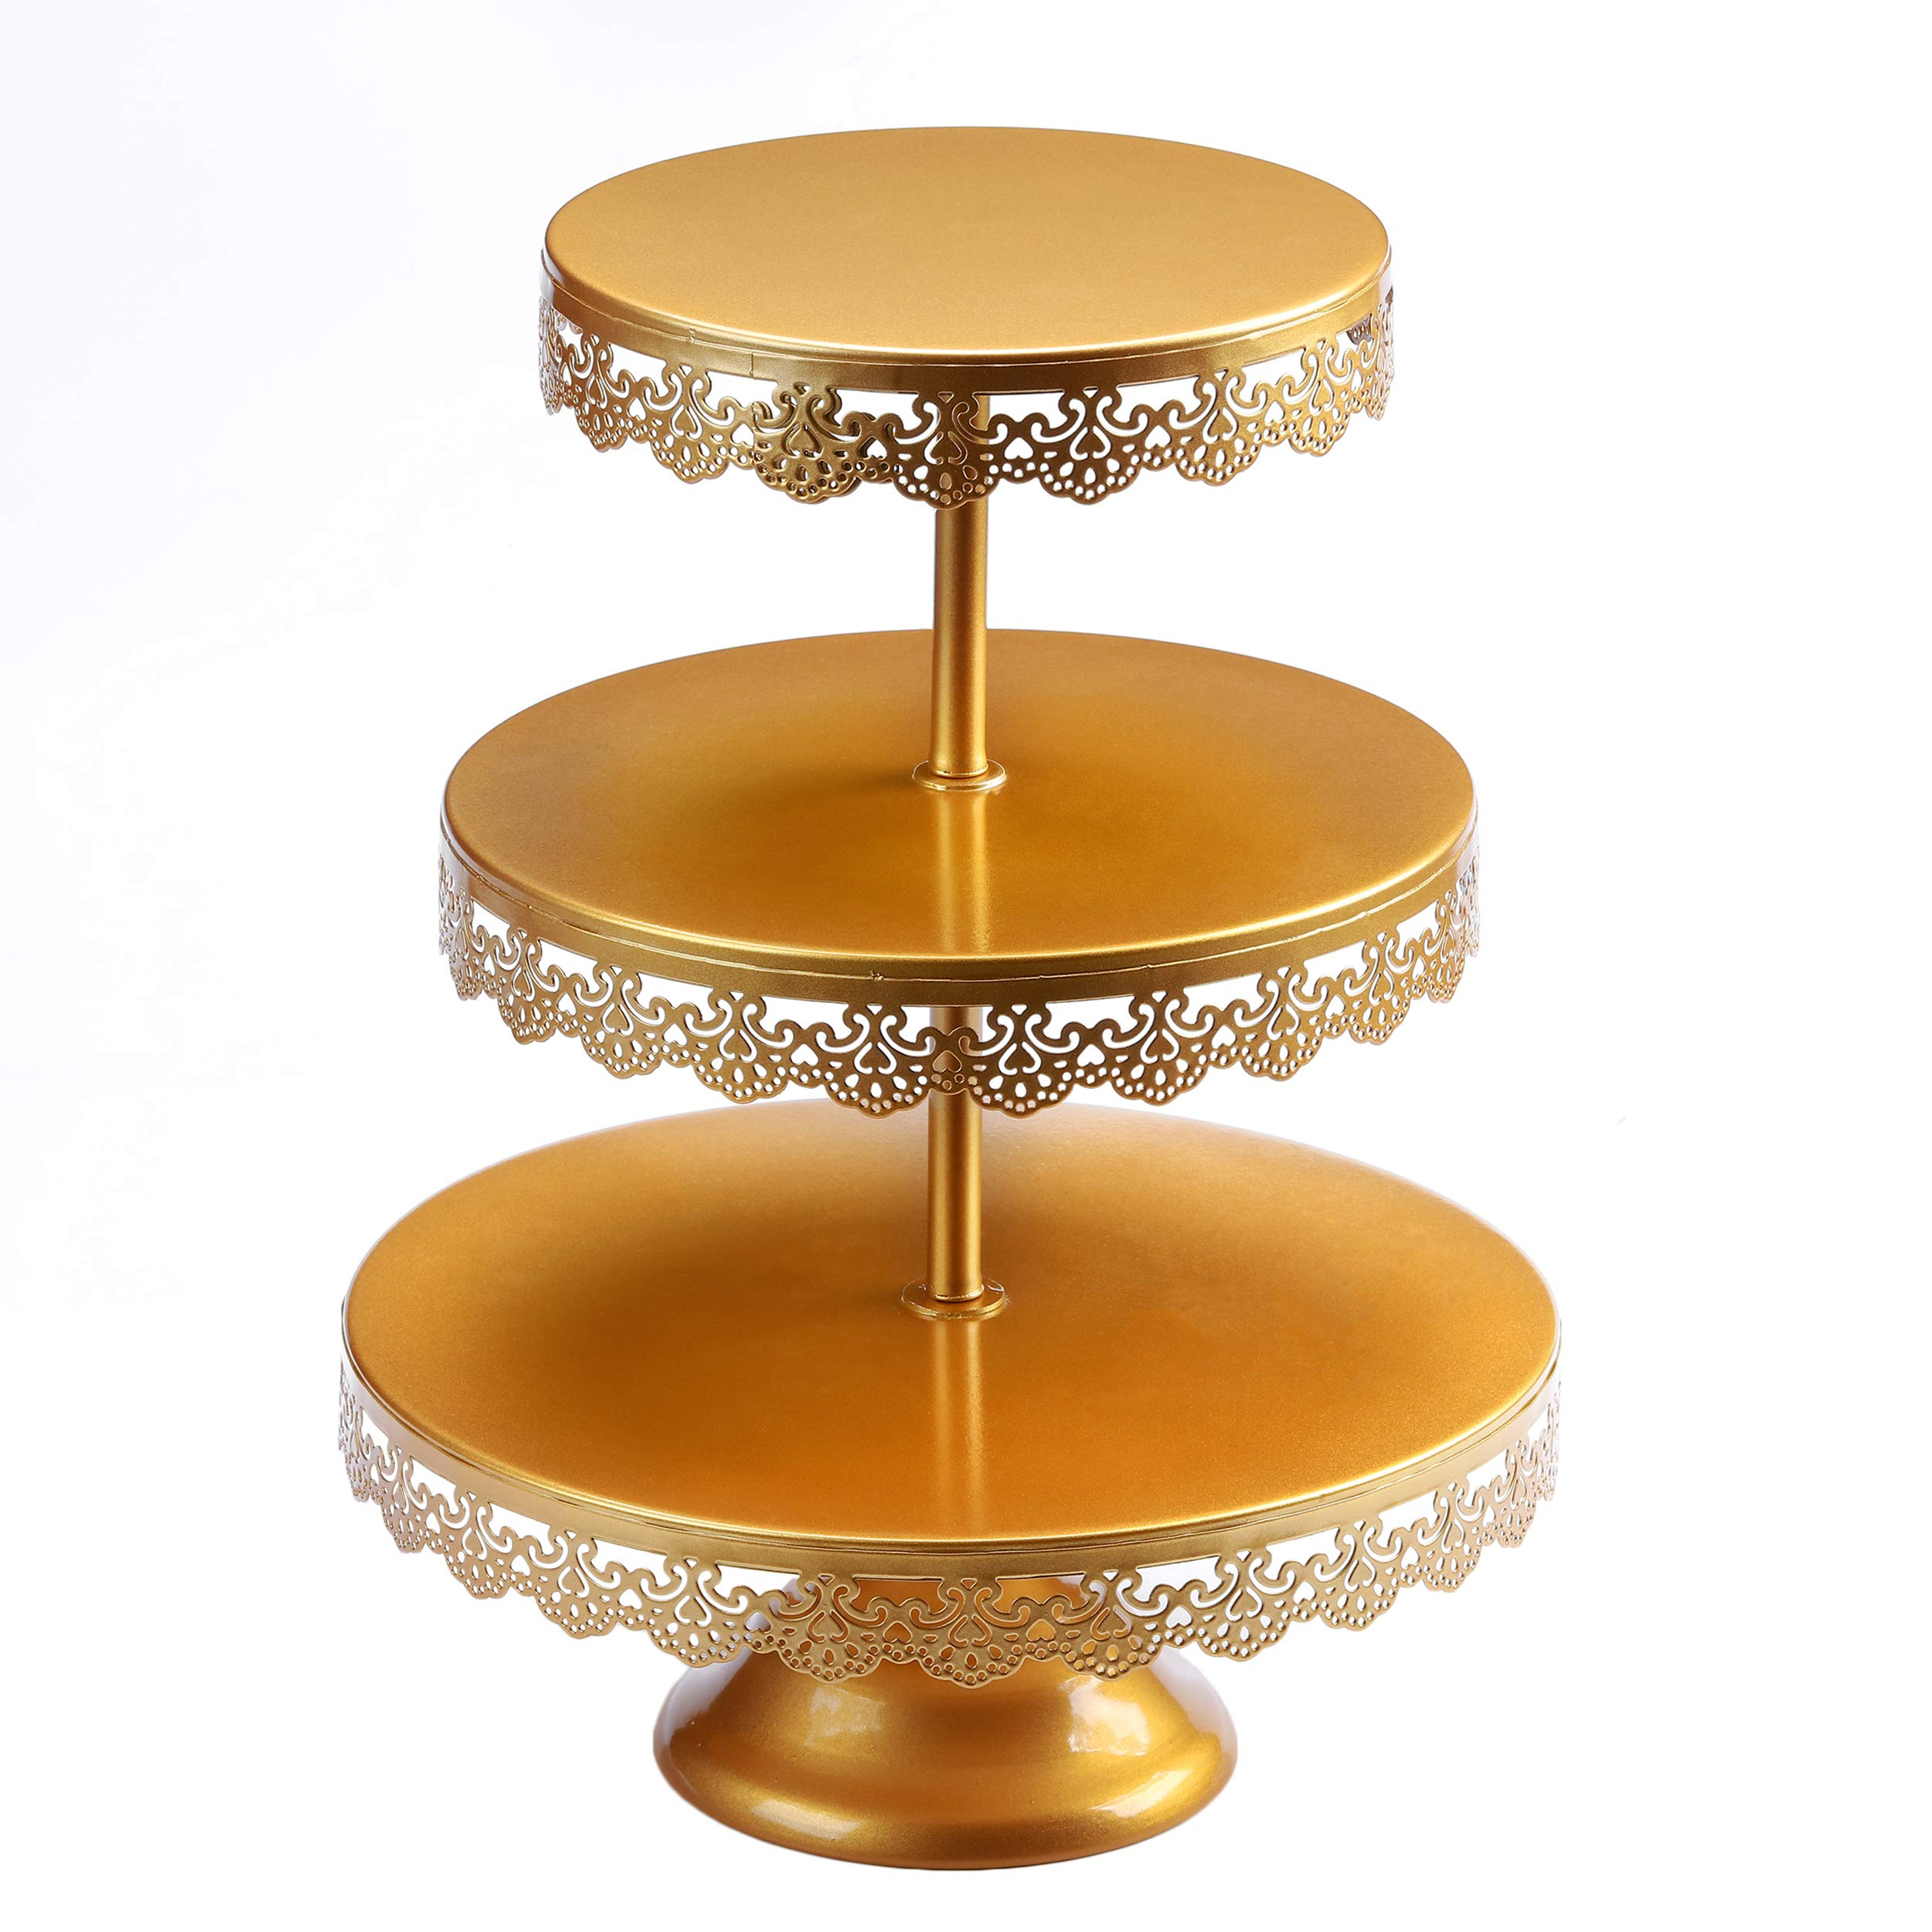 VILAVITA 3-tier Round Cupcake Stand Dessert Tower Iron Cupcake Holder Display Stand for Wedding Birthday Party Celebration, Gold